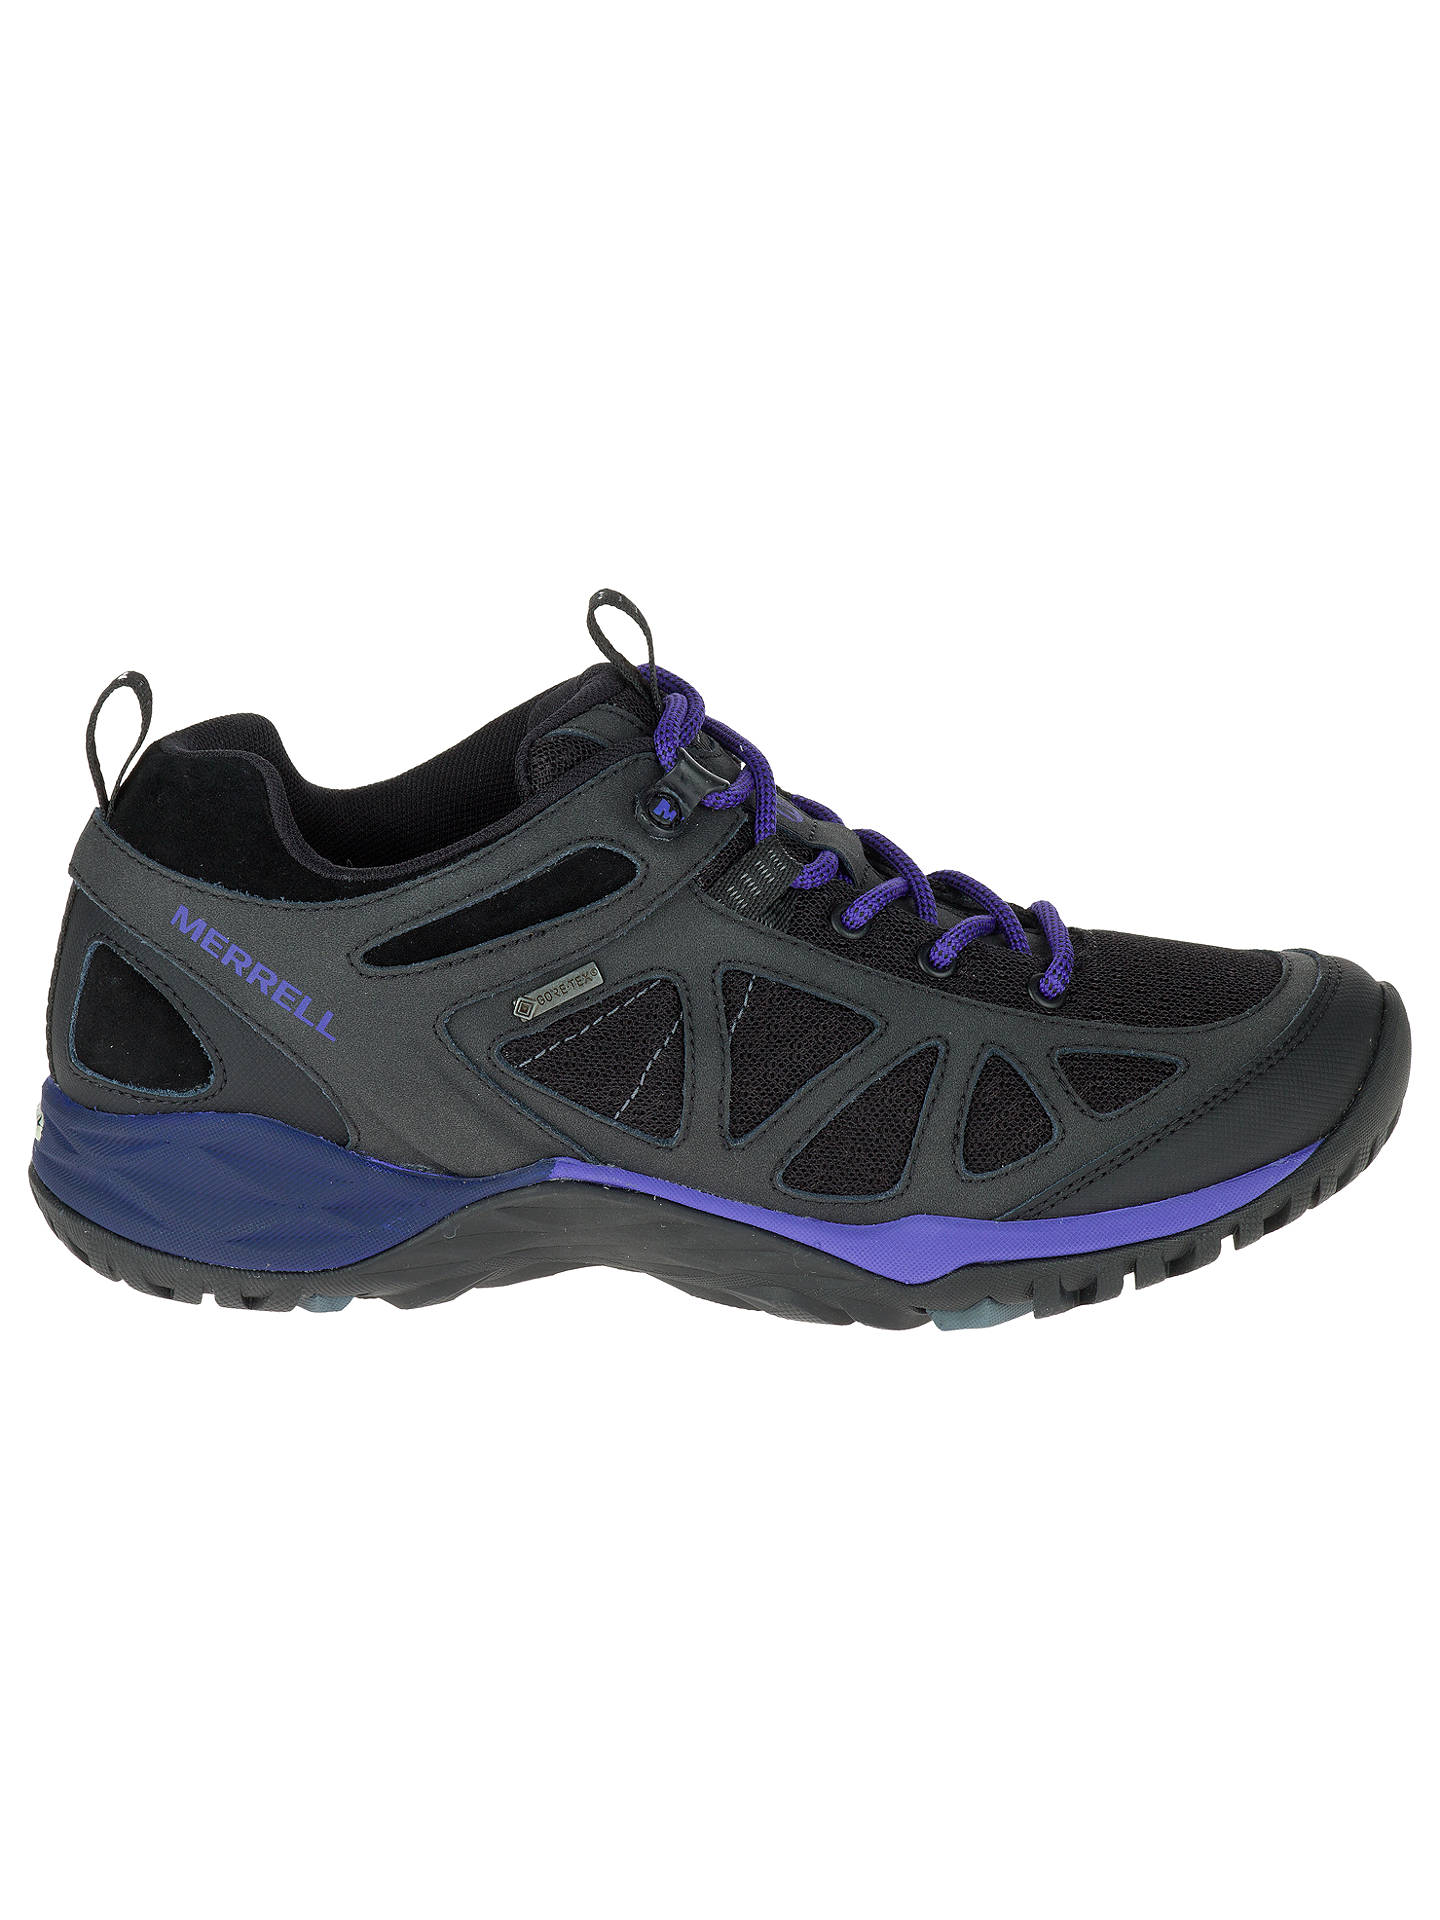 3f38d2fcb0ec Buy Merrell Women s Siren Sport Q2 Gore-Tex Walking Shoes